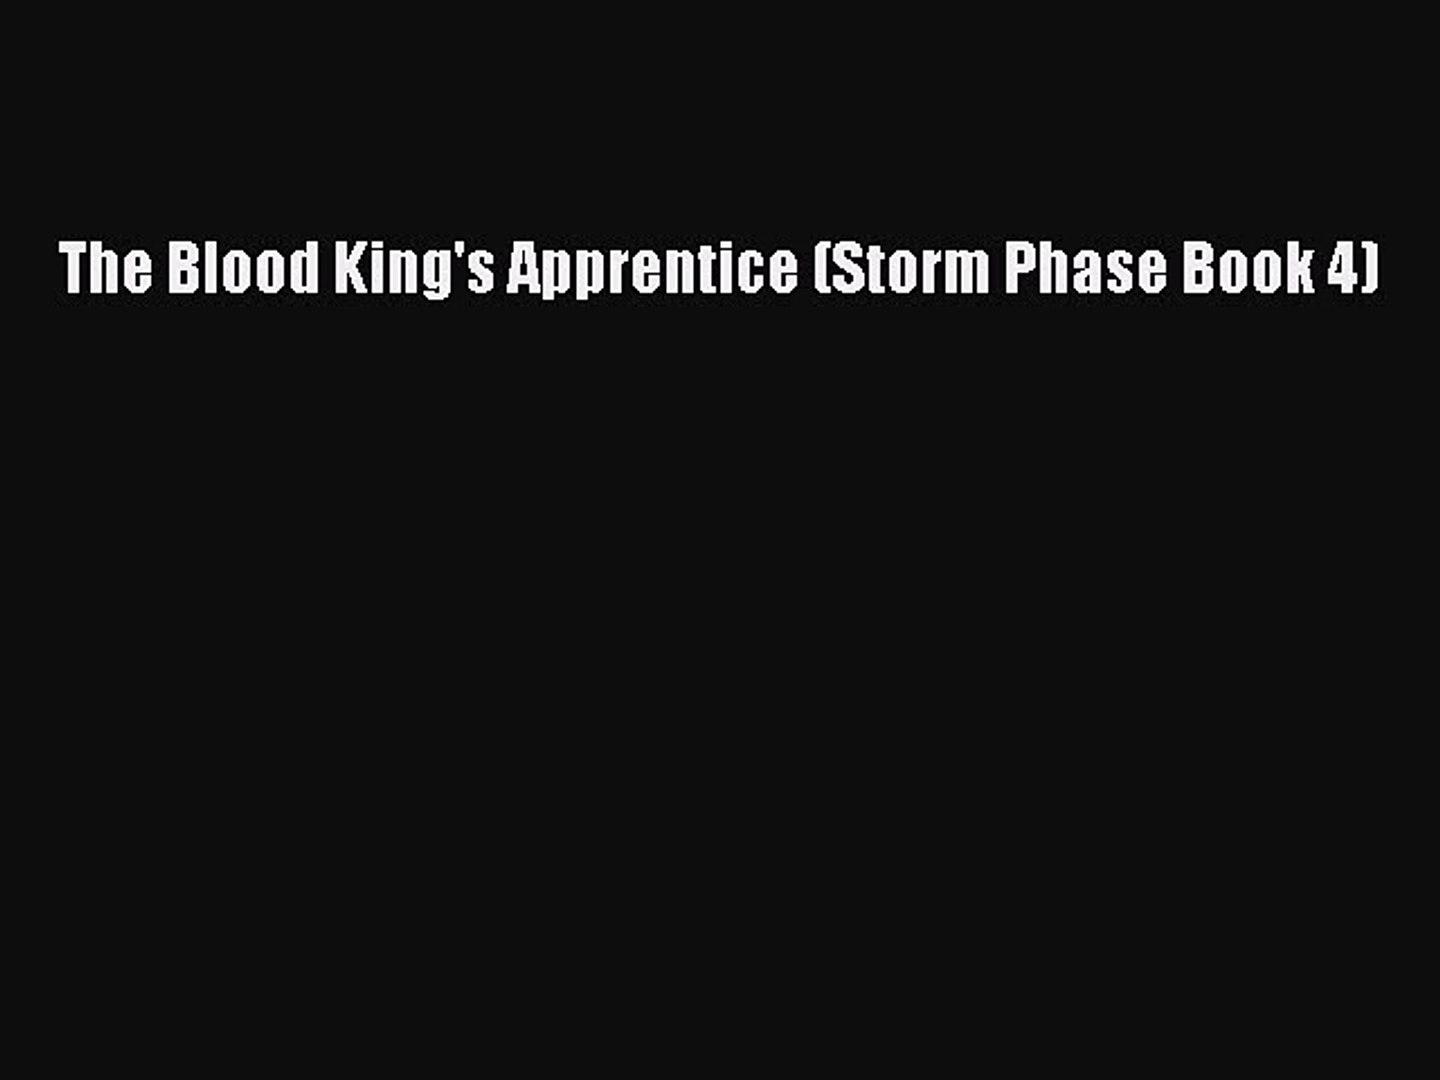 Download The Blood King's Apprentice (Storm Phase Book 4) Free Books